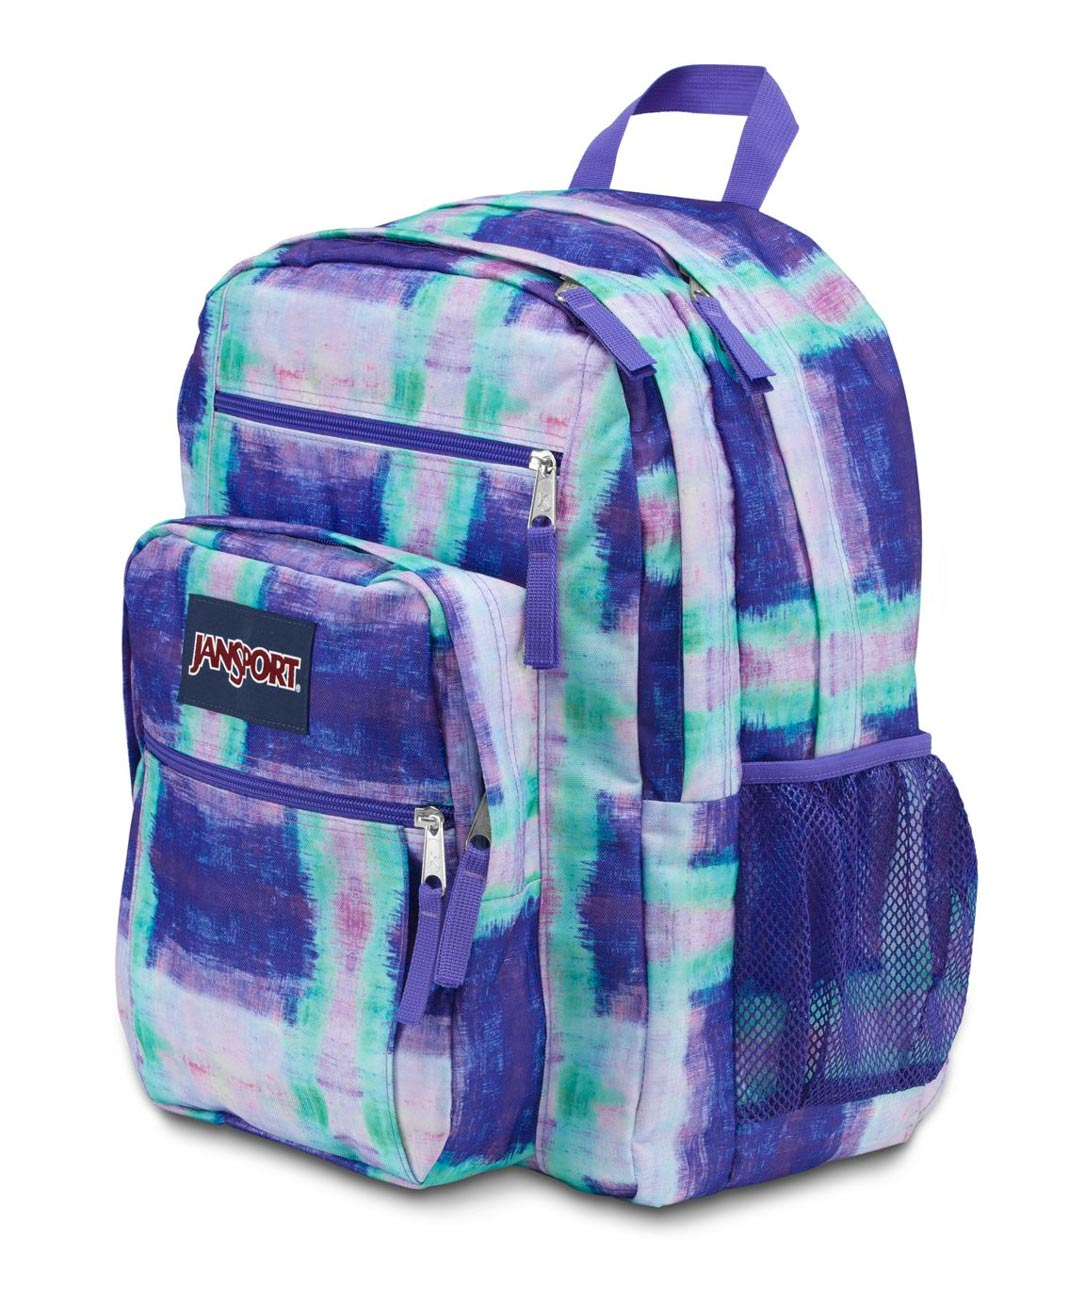 Plaid Jansport Backpack RZY4KPaf